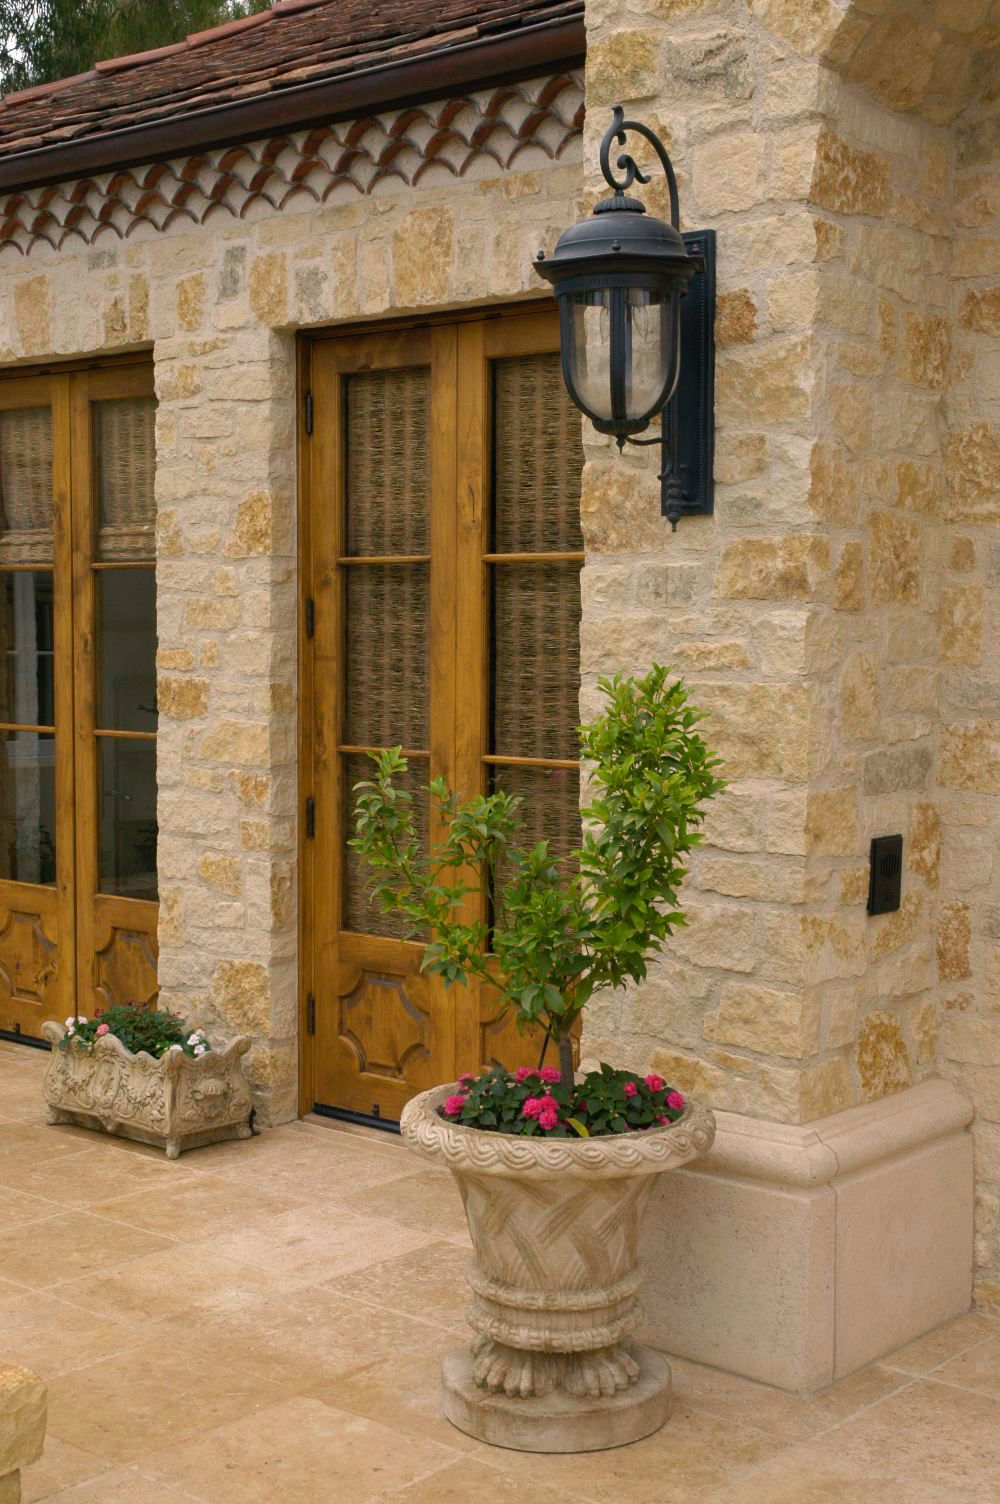 House Design Architects designed this french country style patio for clients in Fairbanck Ranch California